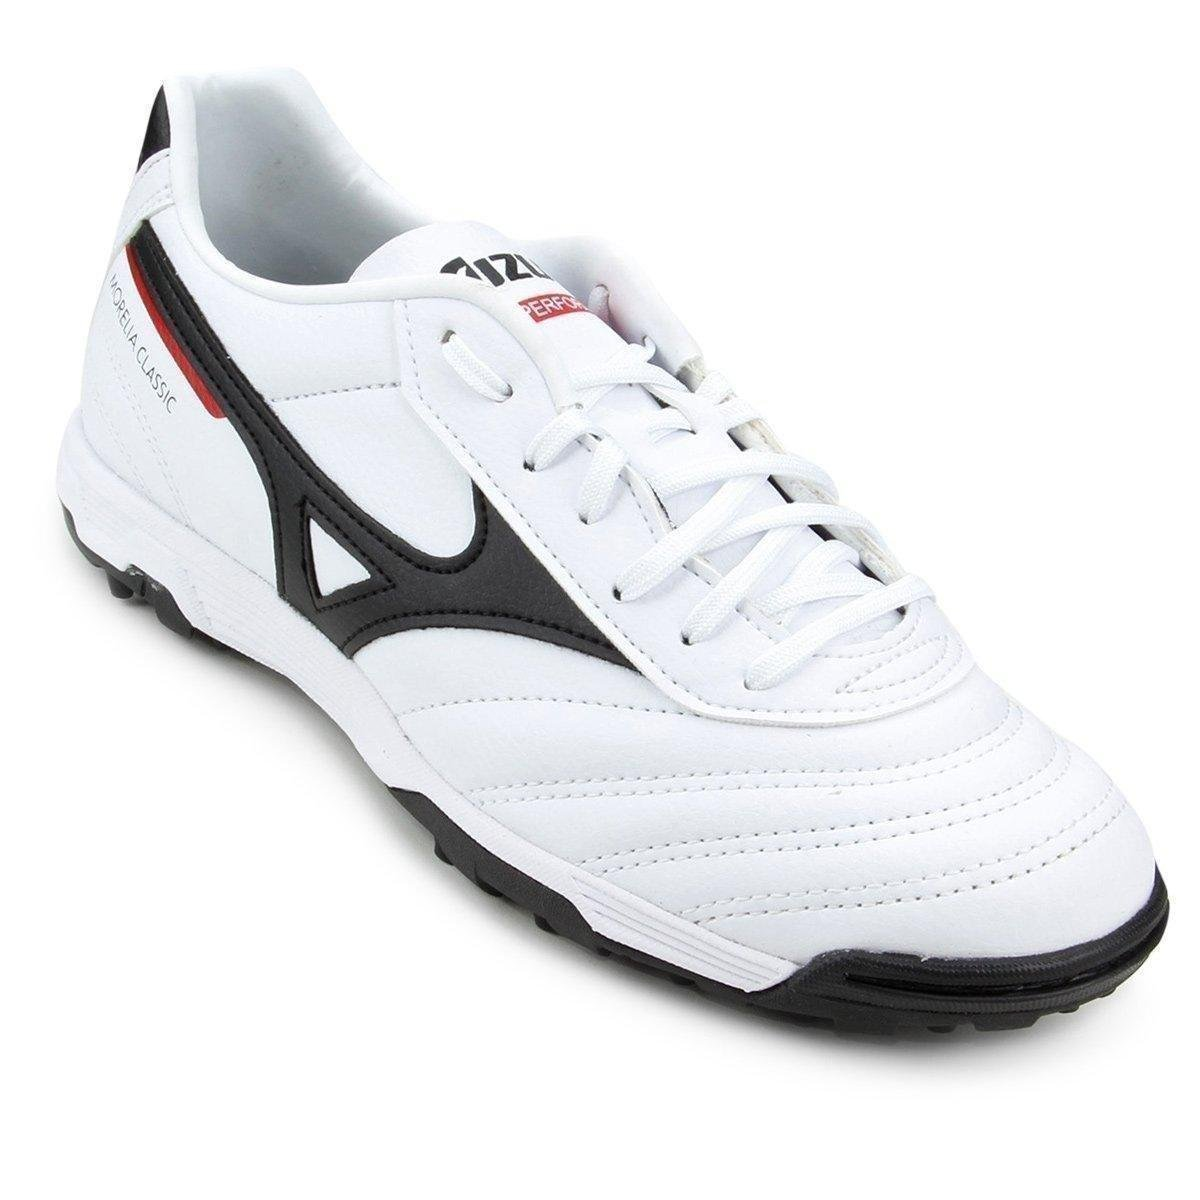 b2e05241541bb Chuteira Society Mizuno Morelia Classic AS P - Branco e Preto | Allianz  Parque Shop